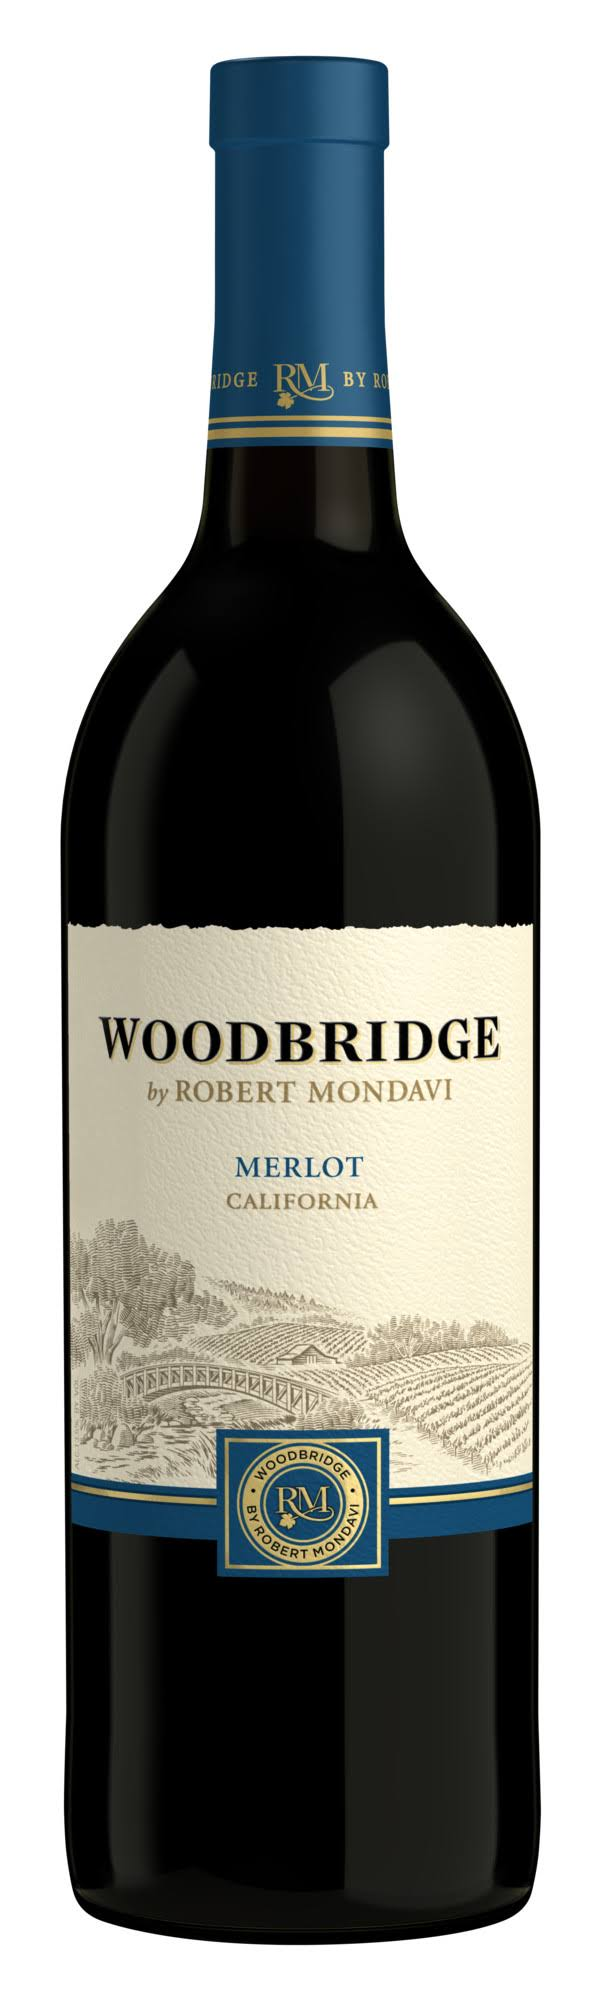 Woodbridge Merlot, California, 2013 - 750 ml